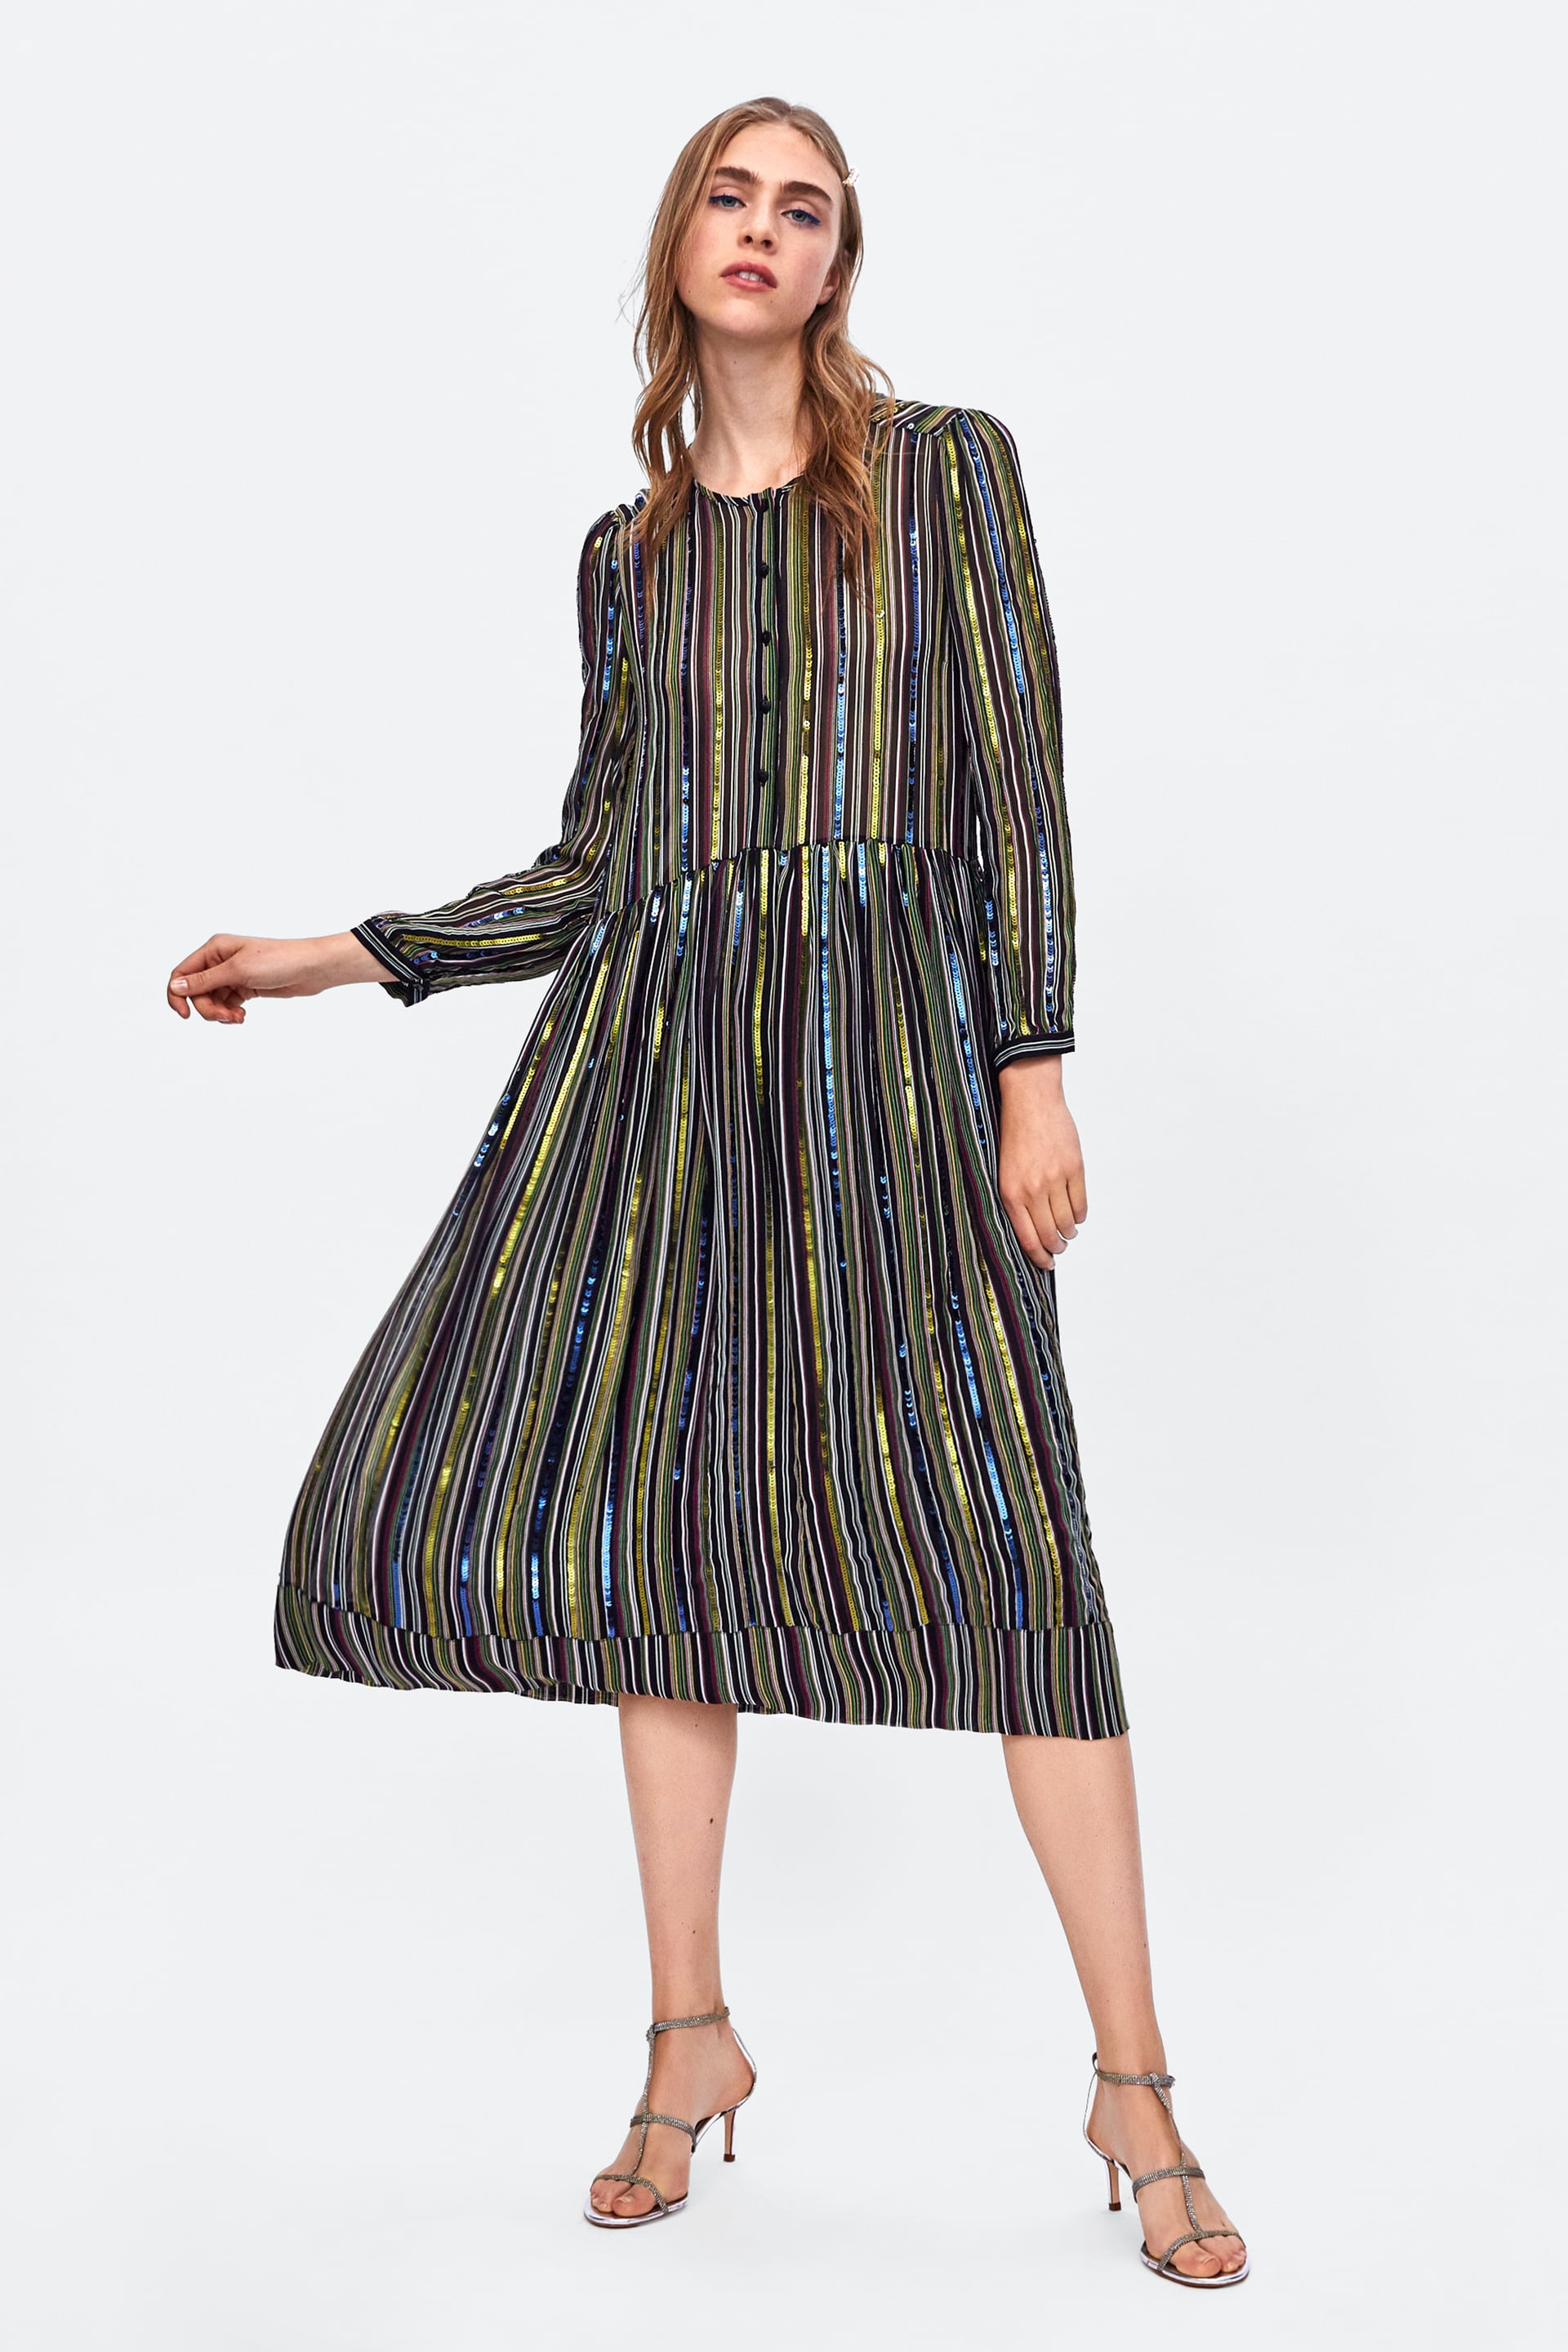 daece57438 Not a dress, I know! But imagine this teamed with an emerald green cashmere  jumper over the top, some tights and trainers or ankle boots.